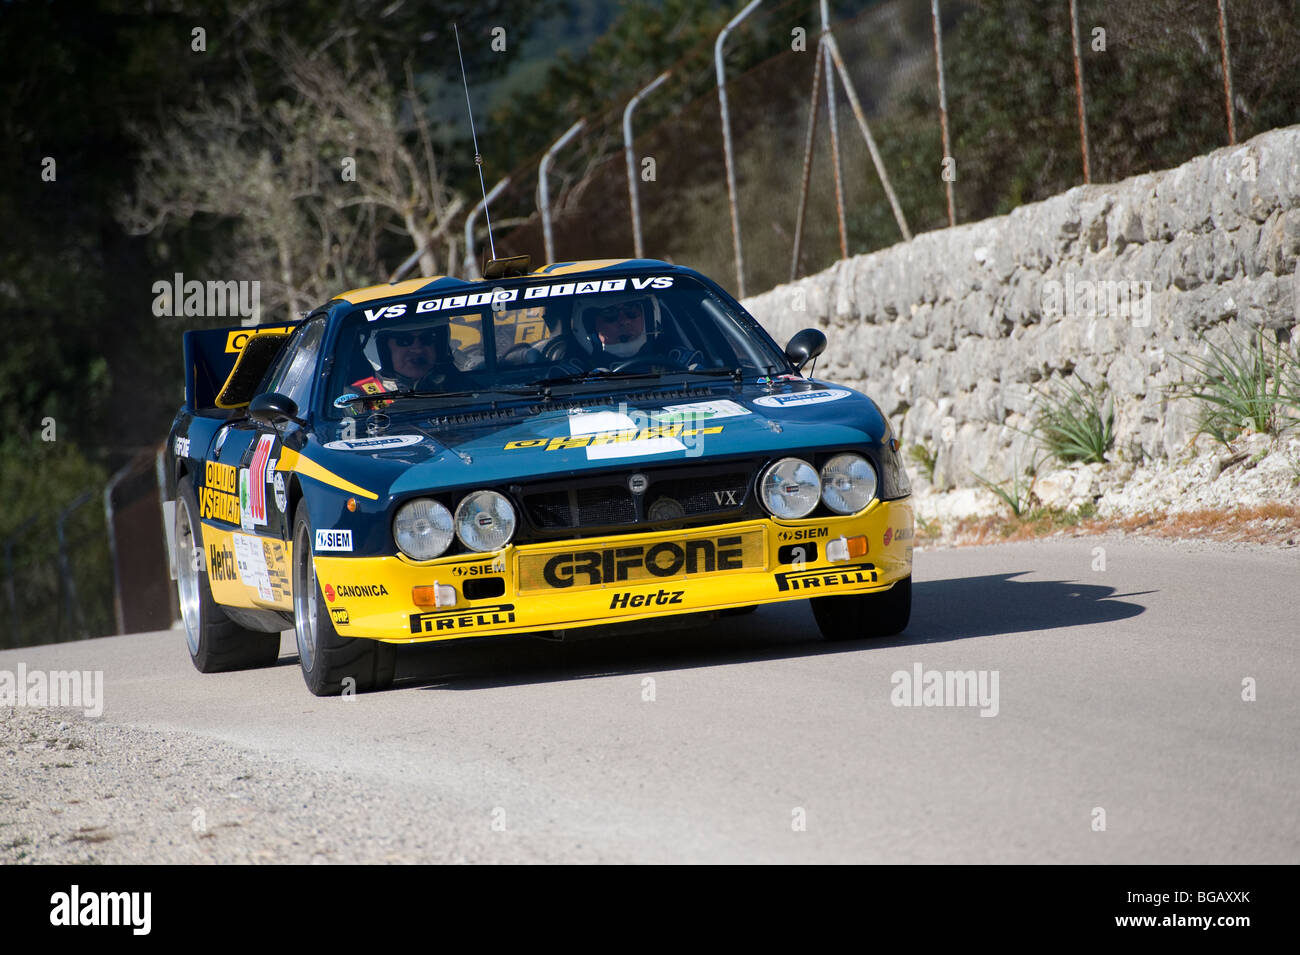 The Lancia Rally 037 (also known as the Lancia Abarth #037) racing in a rally in Spain - Stock Image